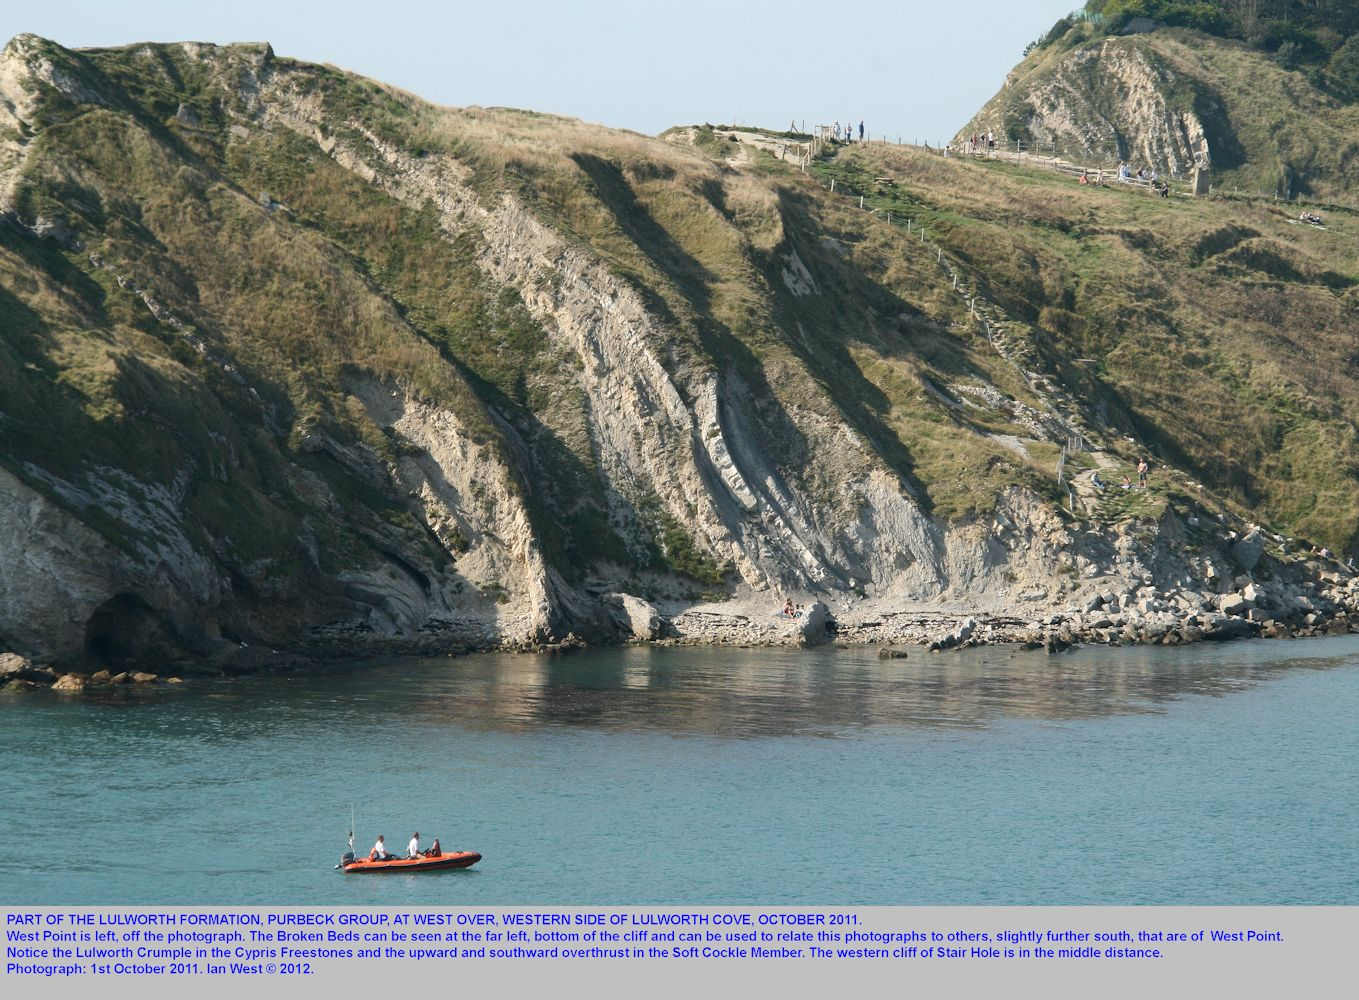 West Over, just north of West Point, Lulworth Cove, Dorset, cliff exposure, October 2011